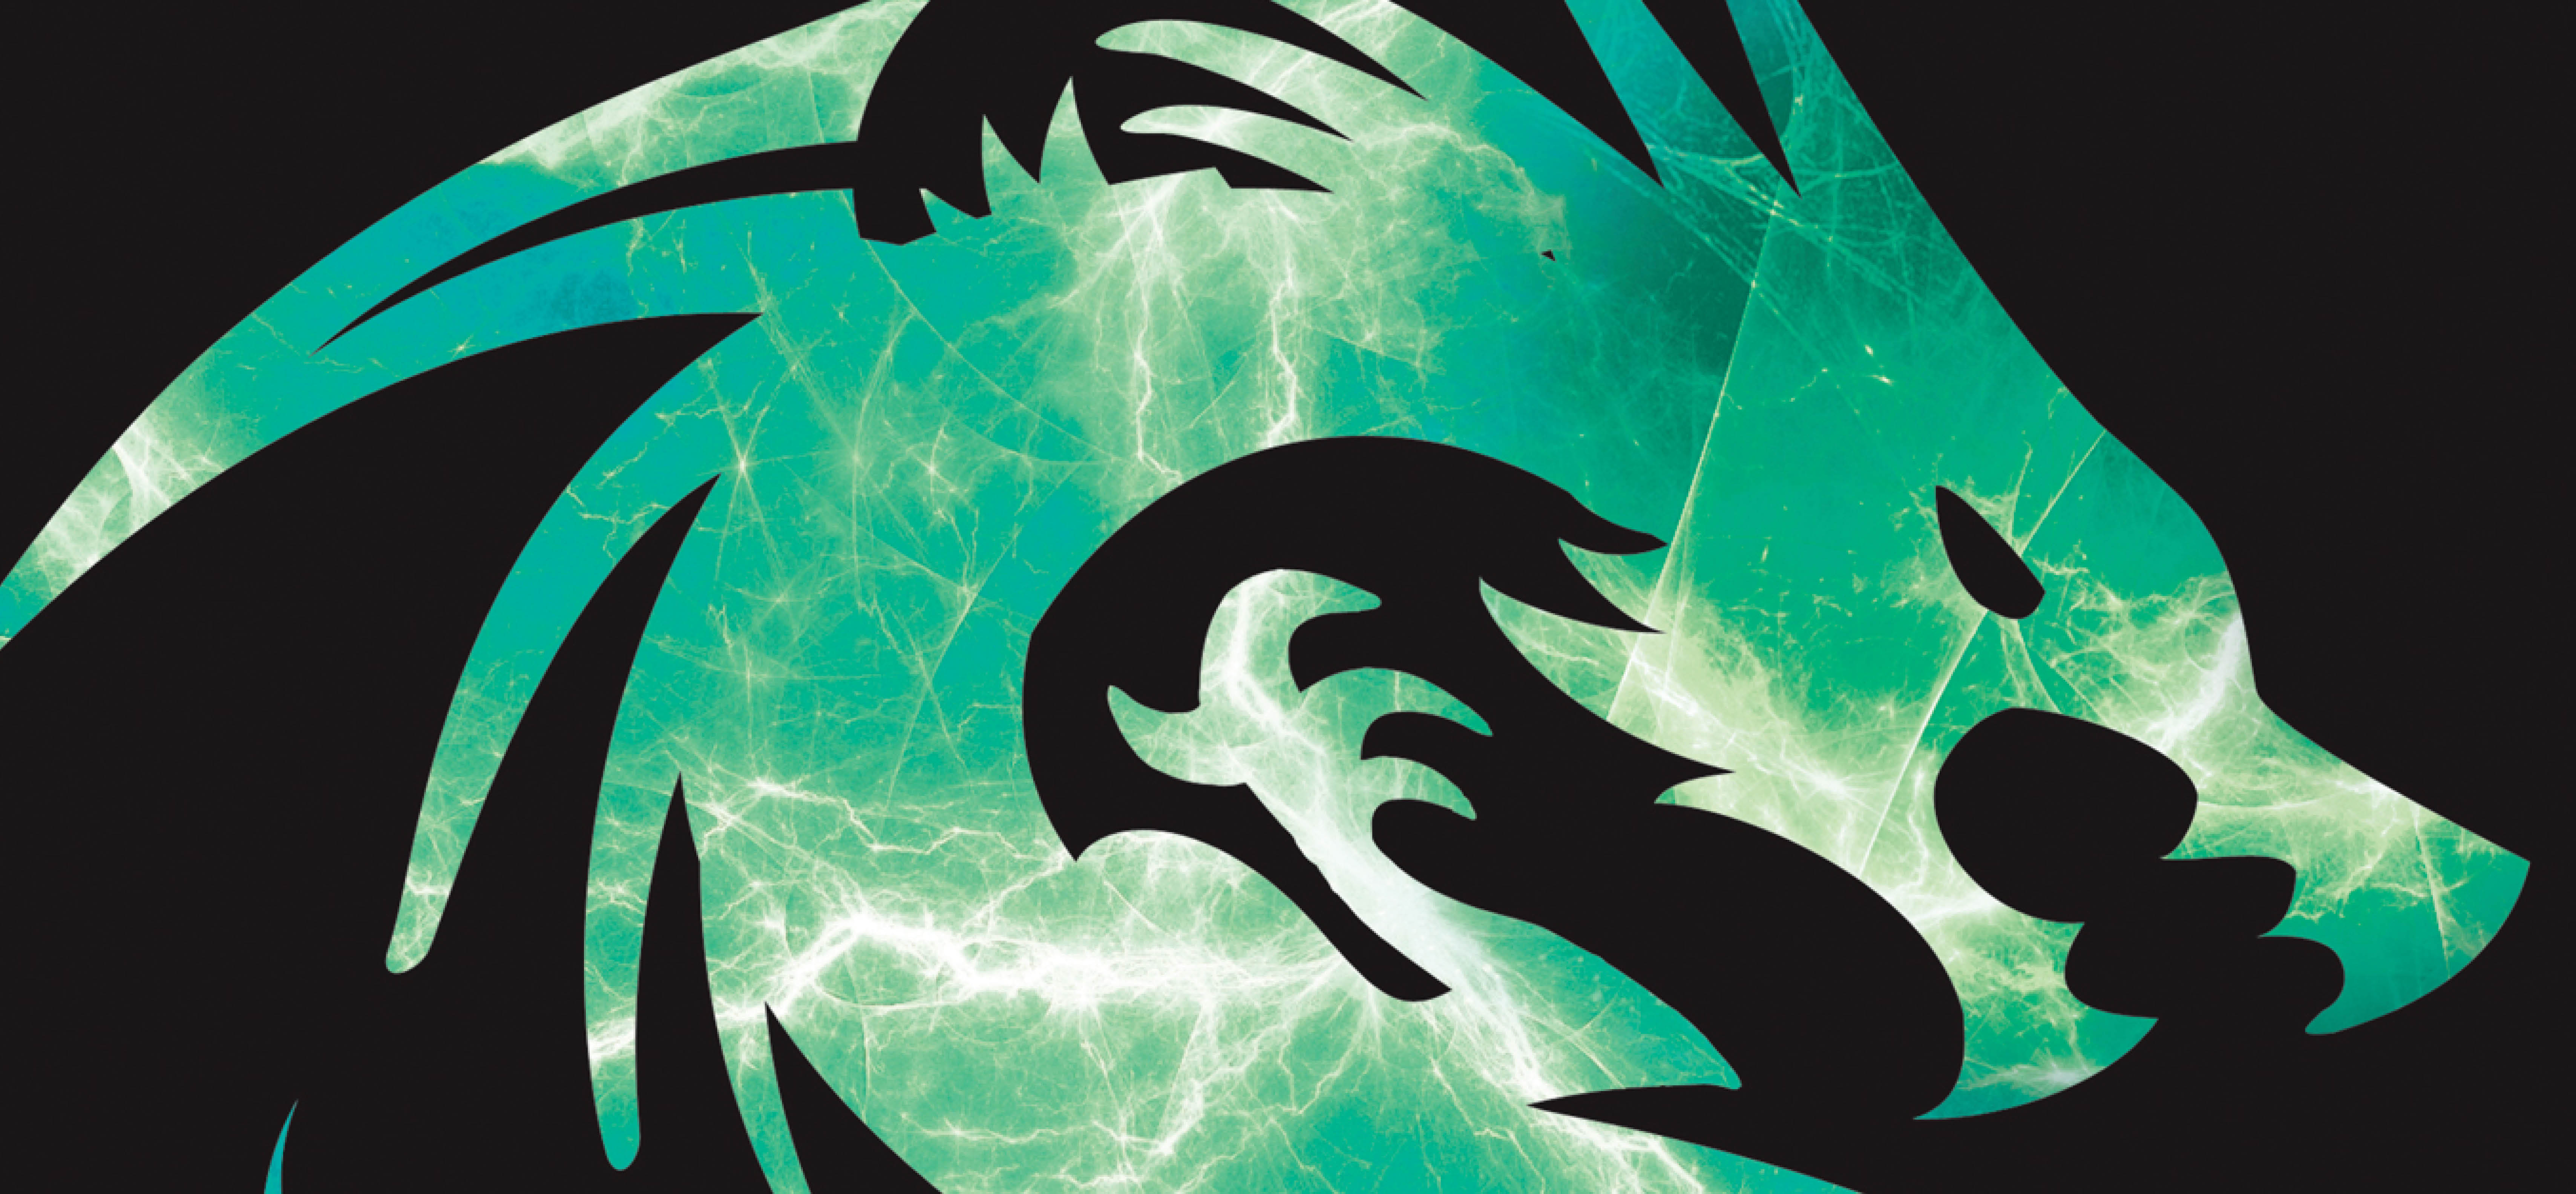 Green Dragons Banners Background Image Banners